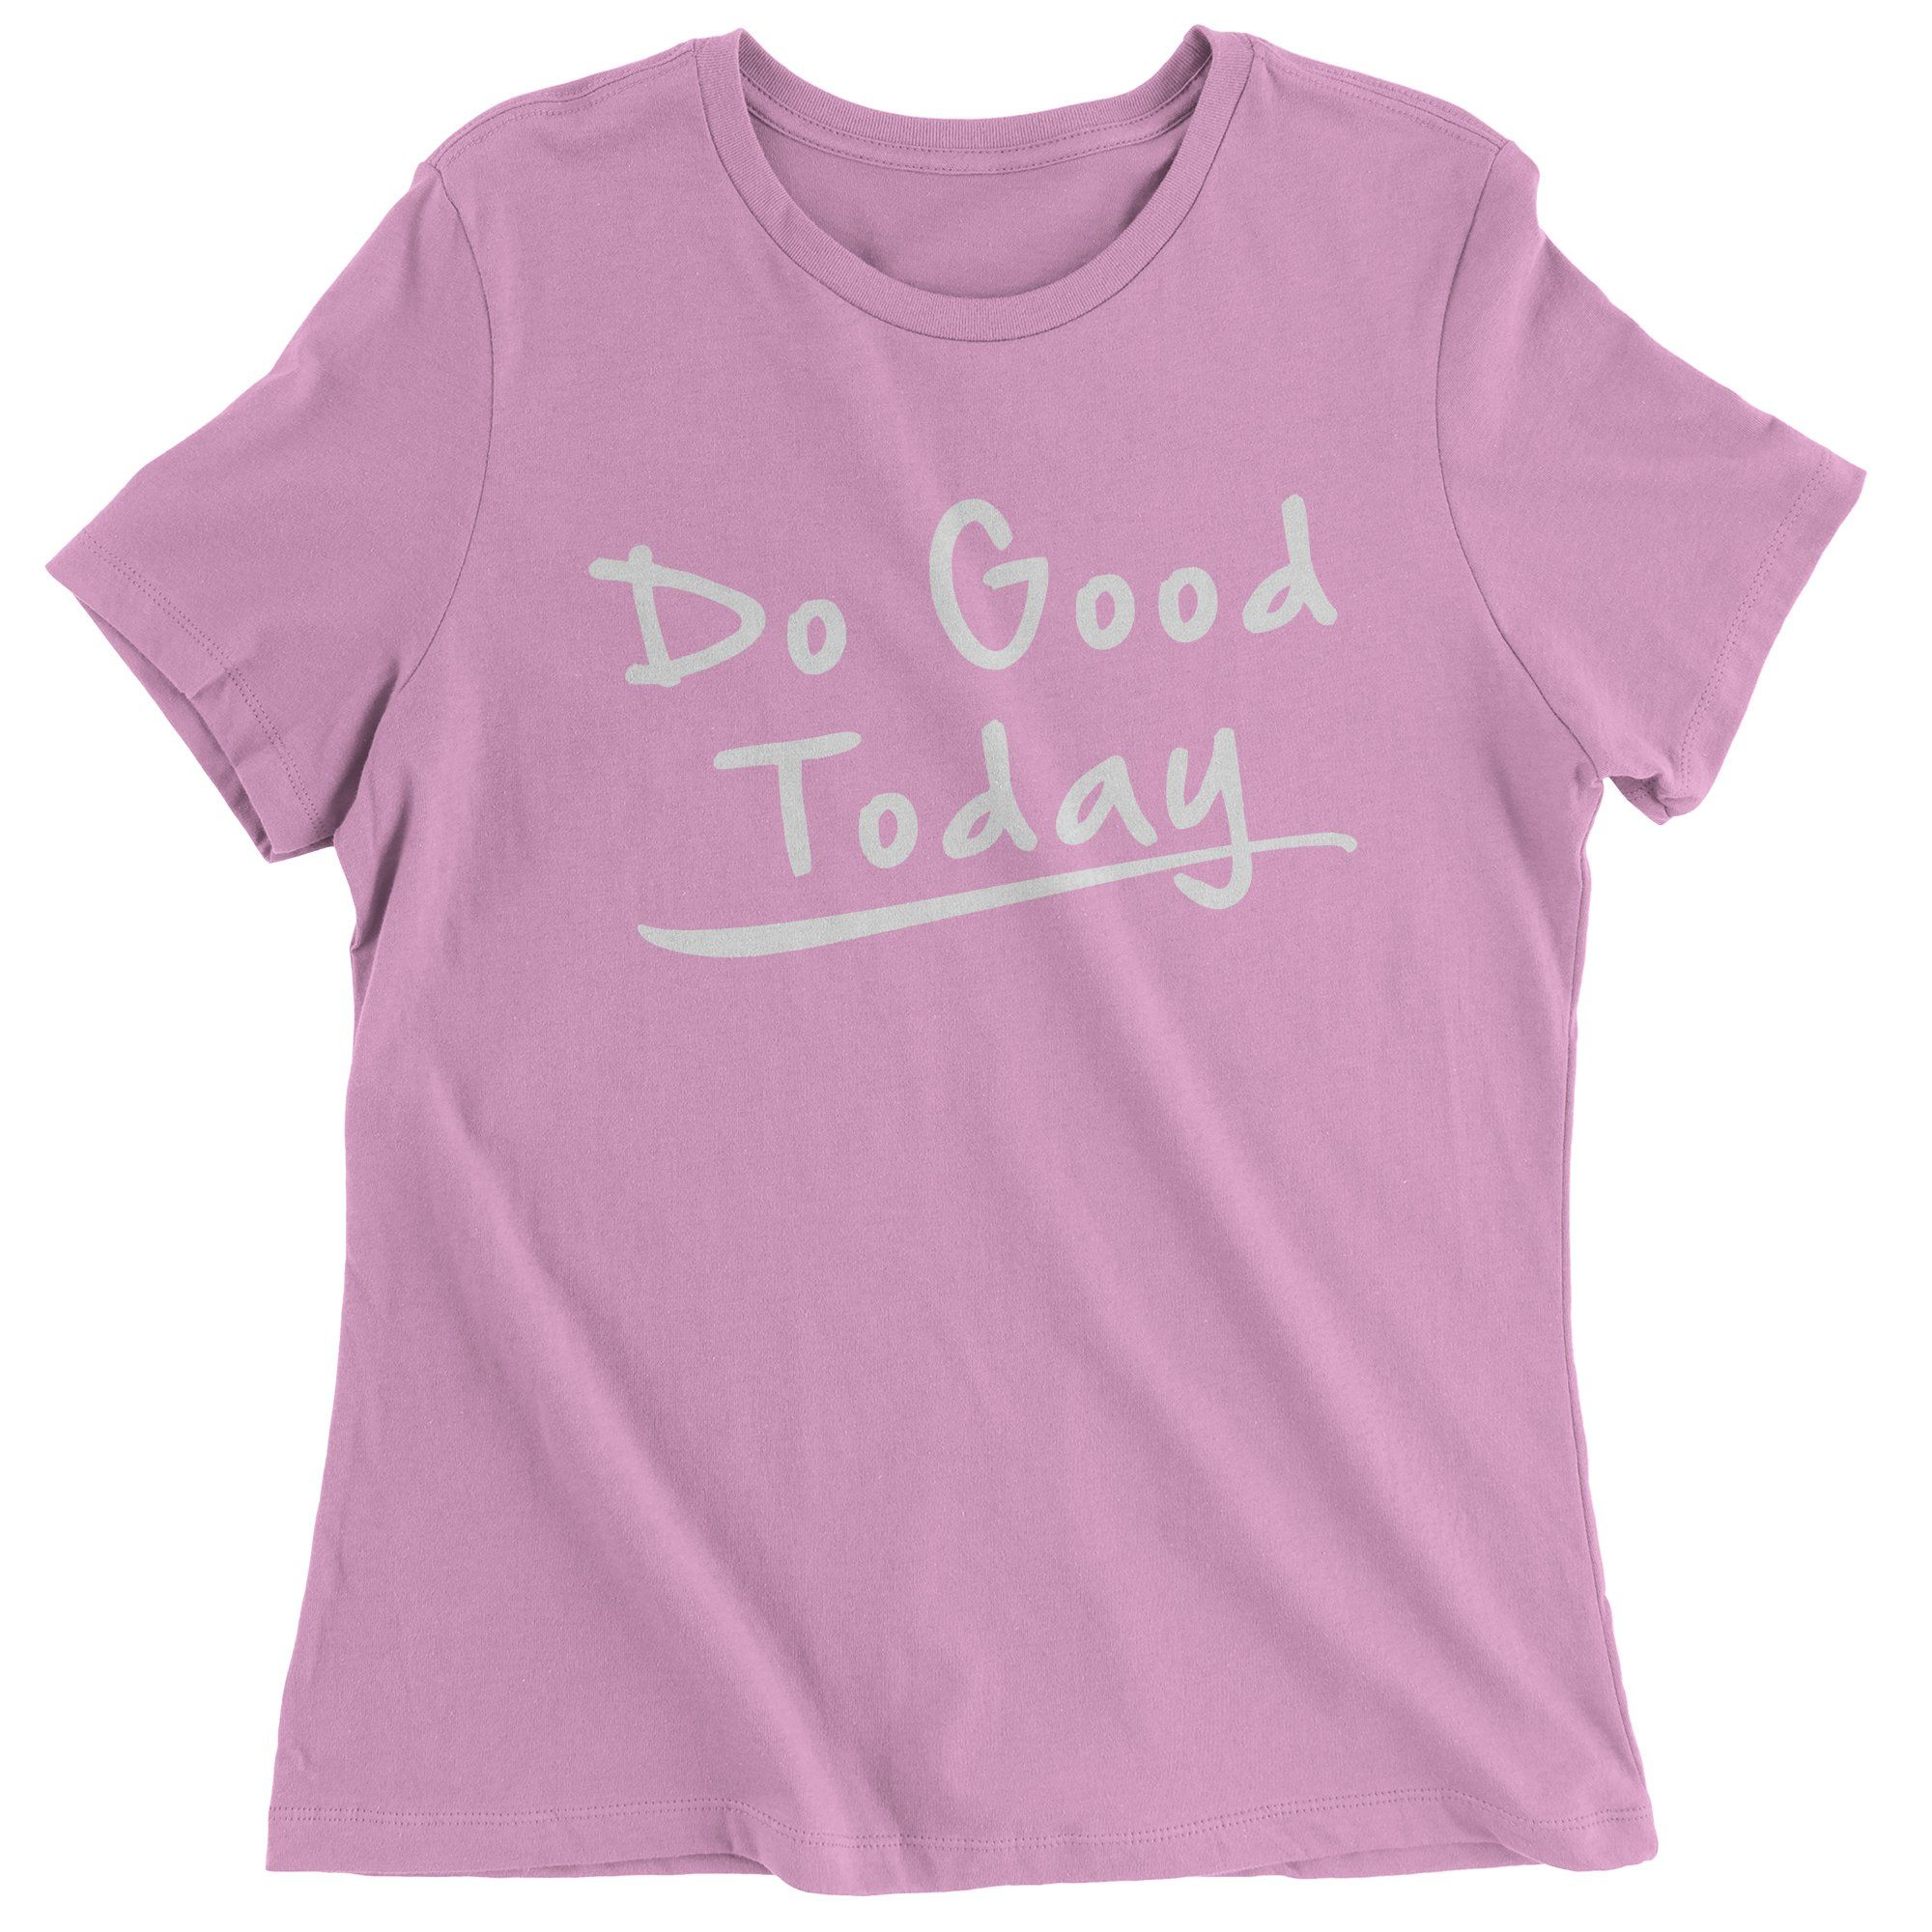 Do Good Today Womens T-shirt